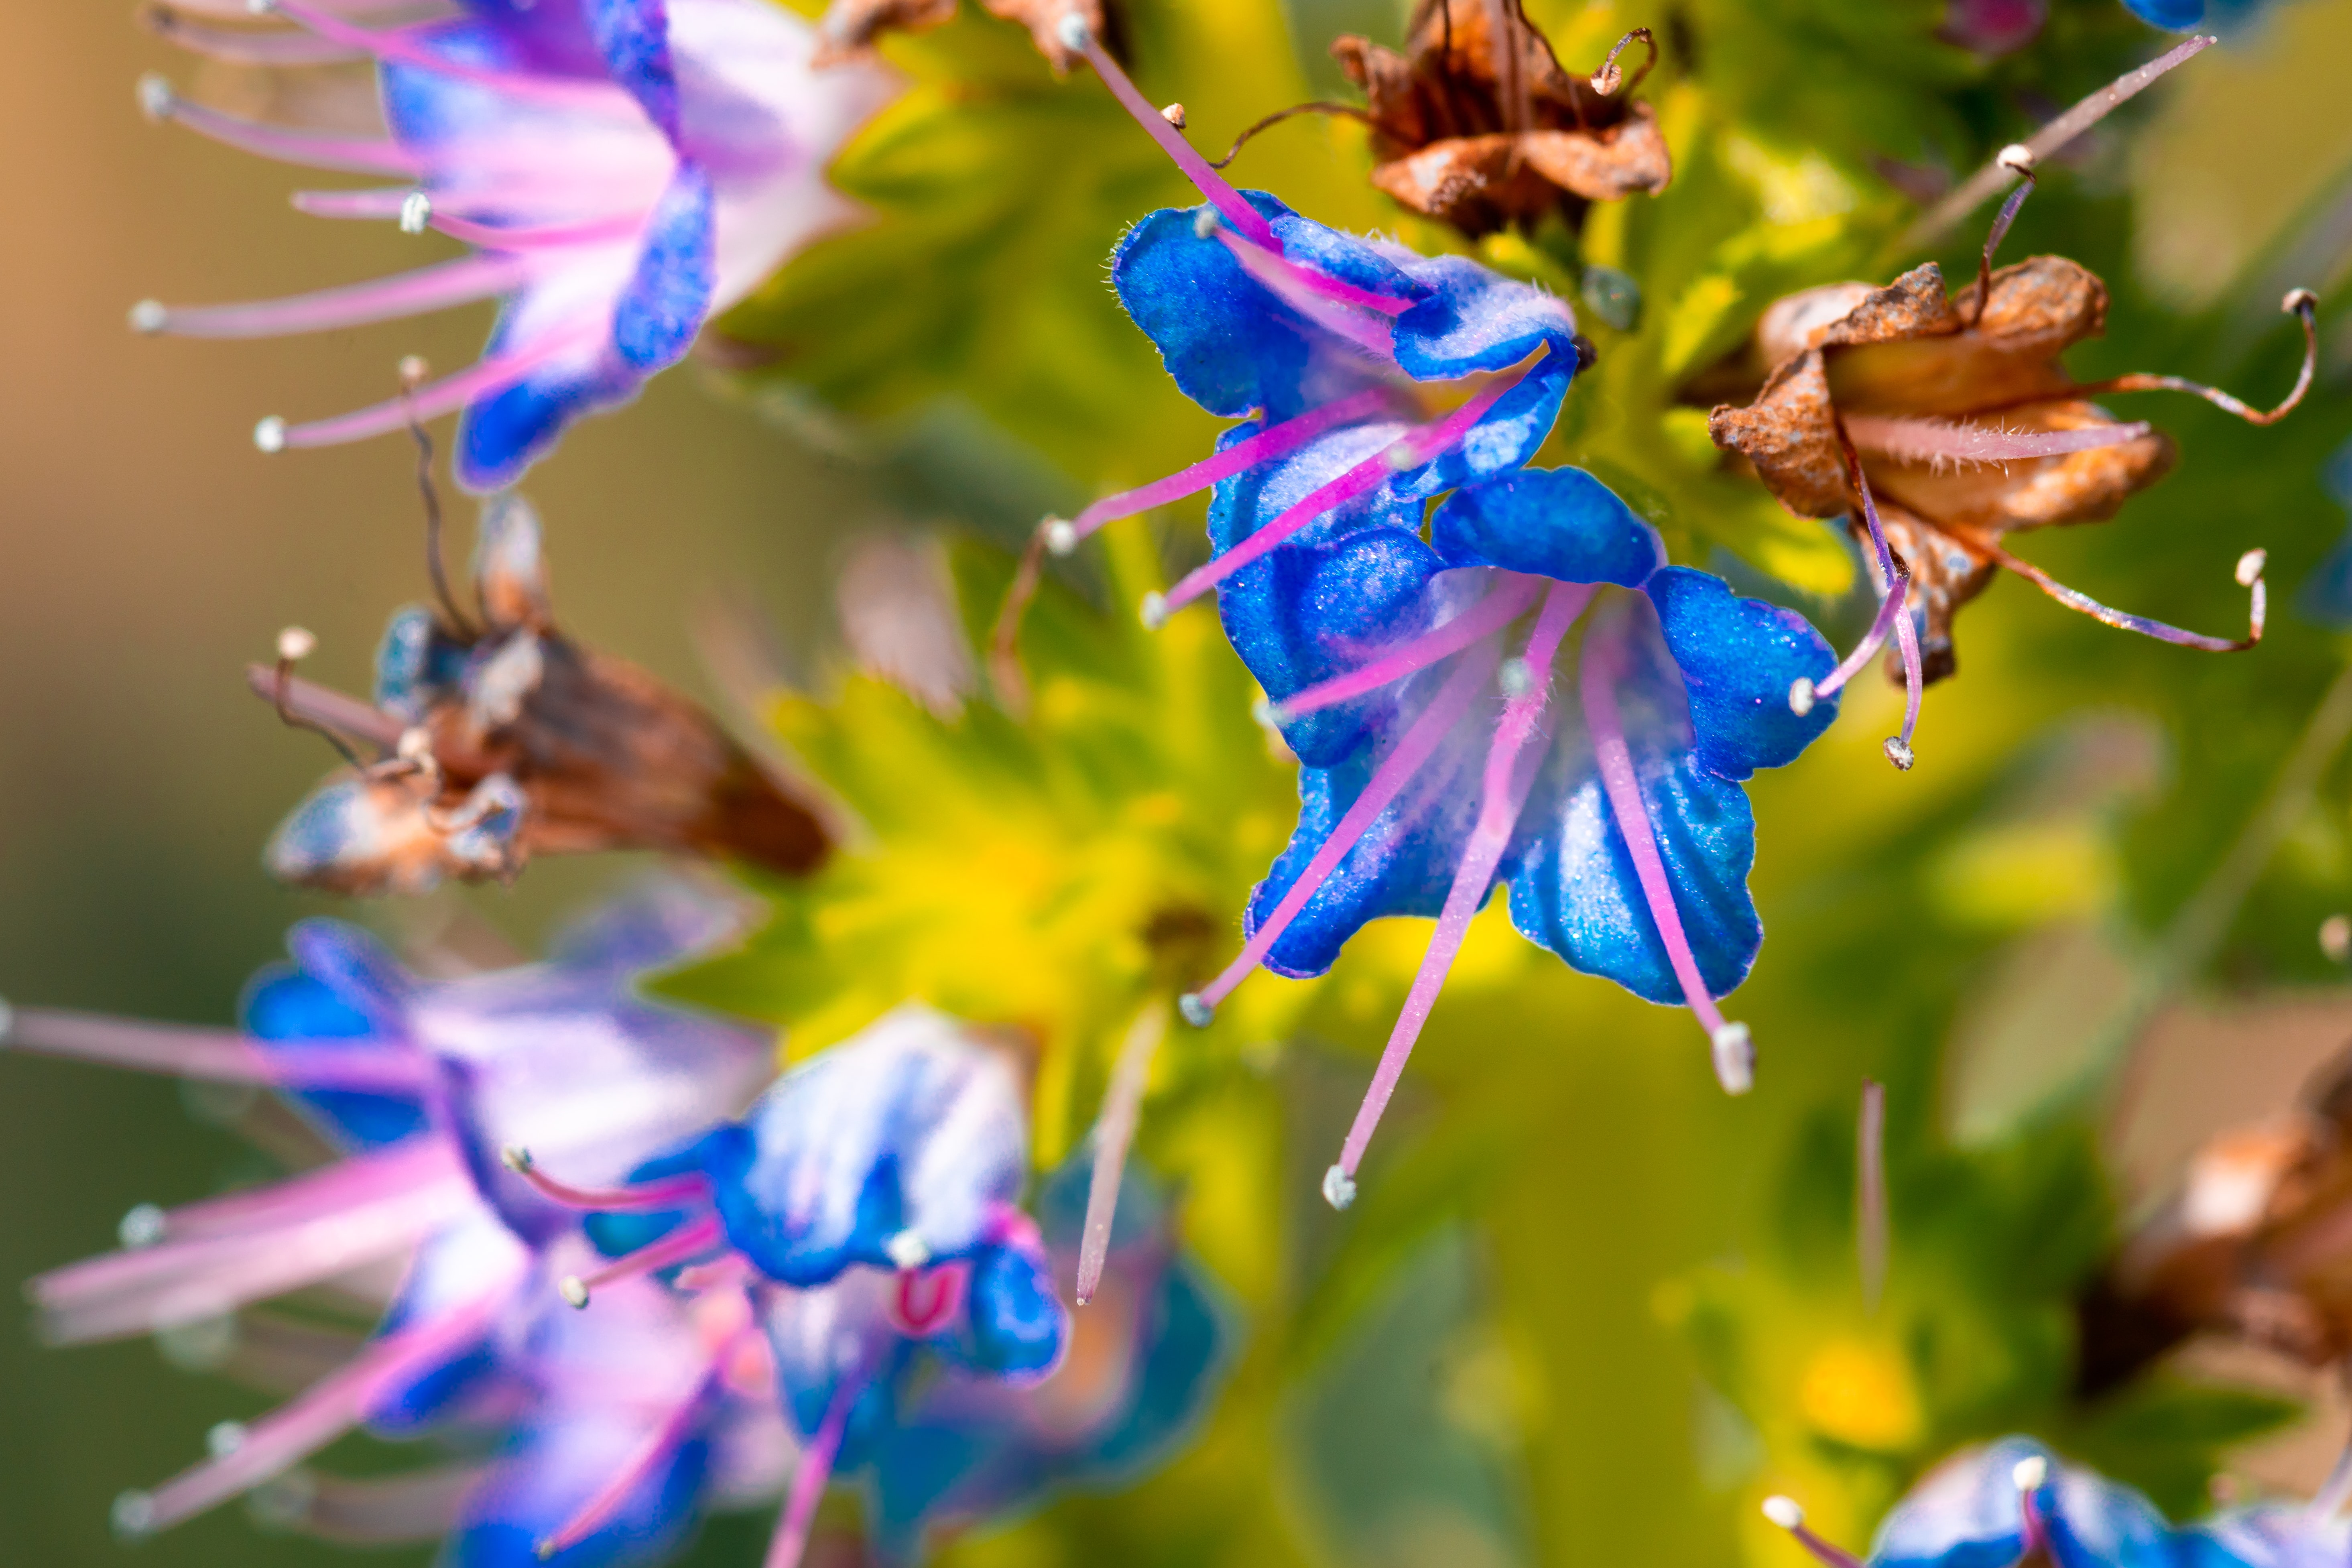 blue-and-pink petaled flowers